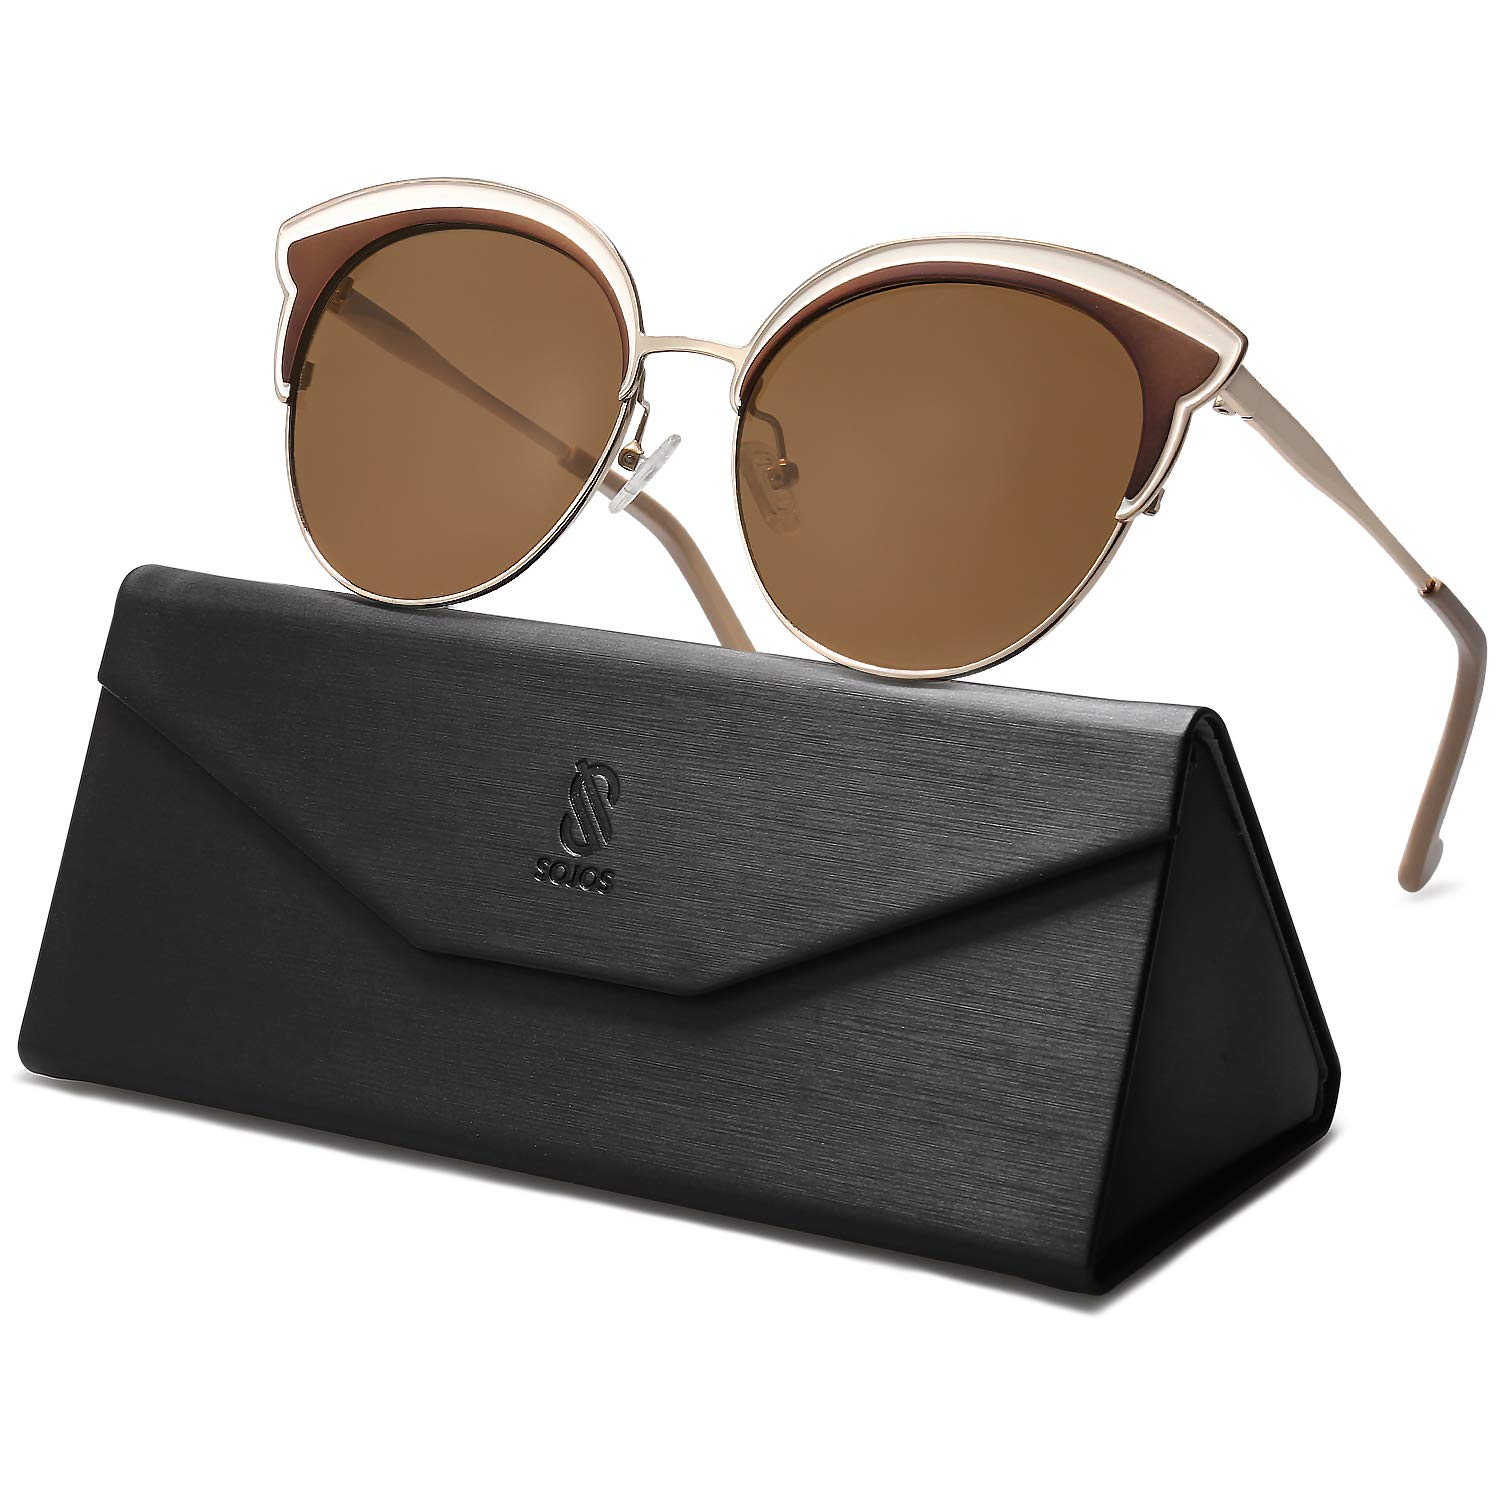 SOJOS Polarized Round Sunglasses for Women Mirrored Lens CUTIE SJ1109 with Gold Frame/Brown Polarized Lens by SOJOS